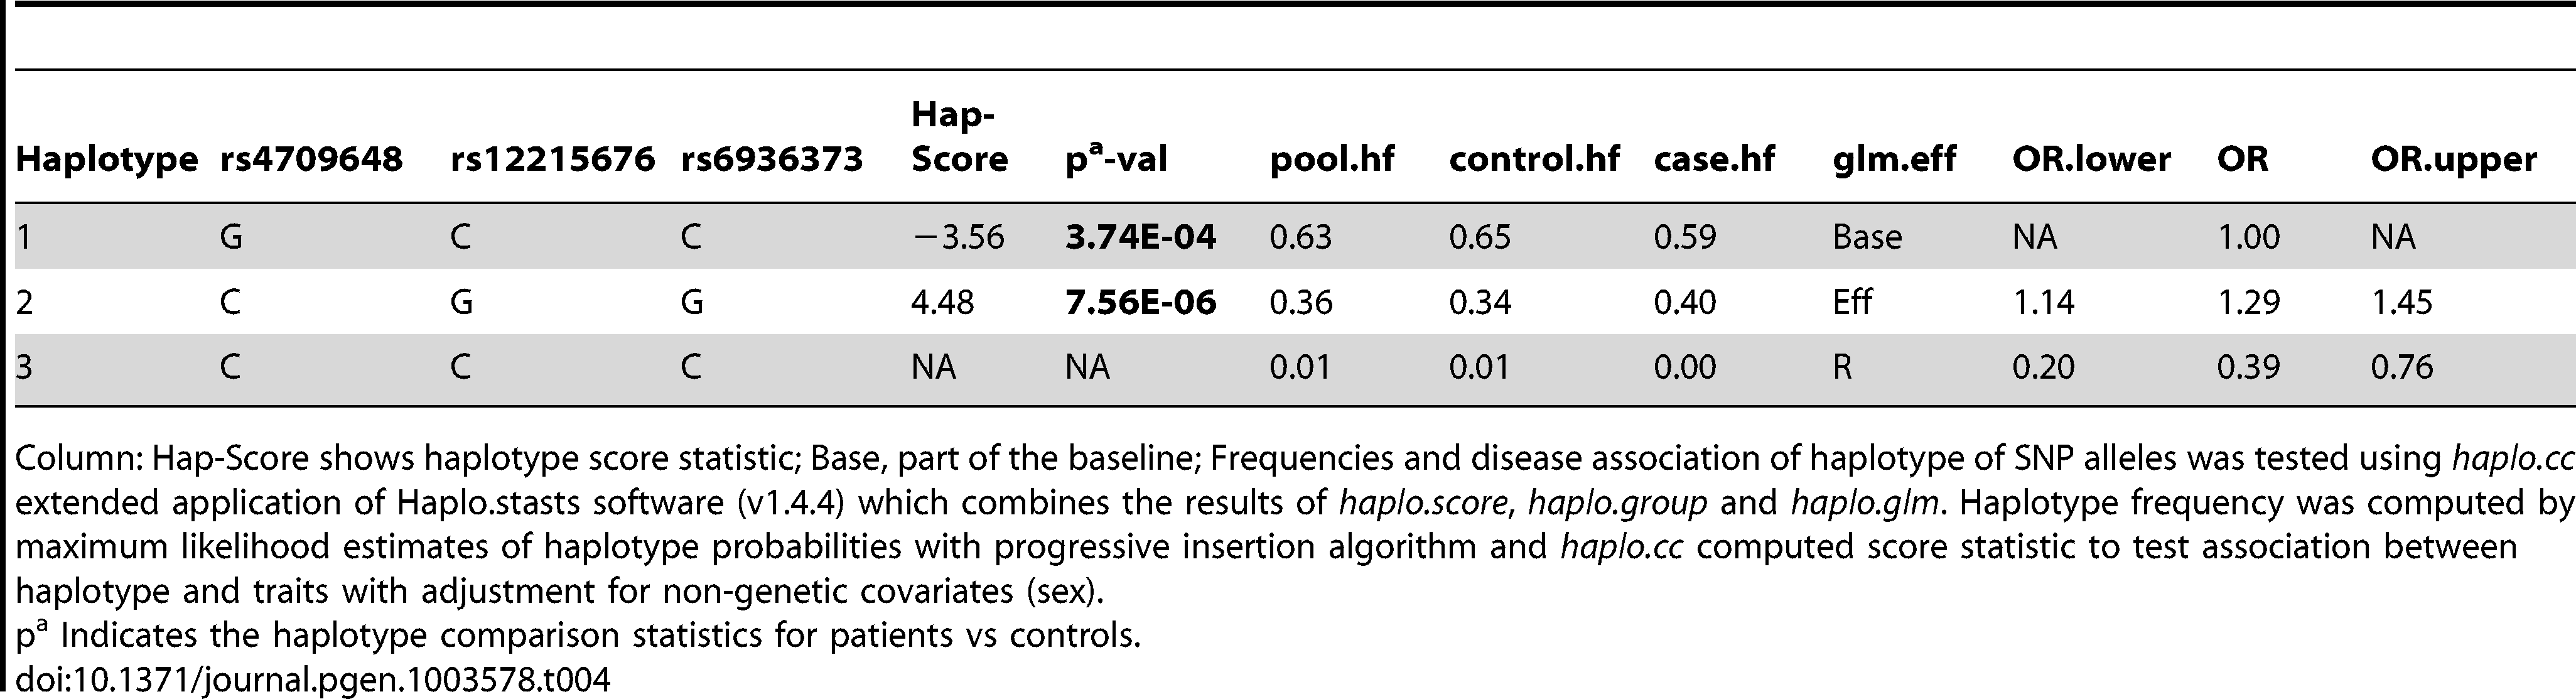 Haplotype structure, haplotype frequencies, significant <i>p</i> values and odds ratio between patients versus healthy controls of 3 SNPs representing BIN-2 of Indian population.